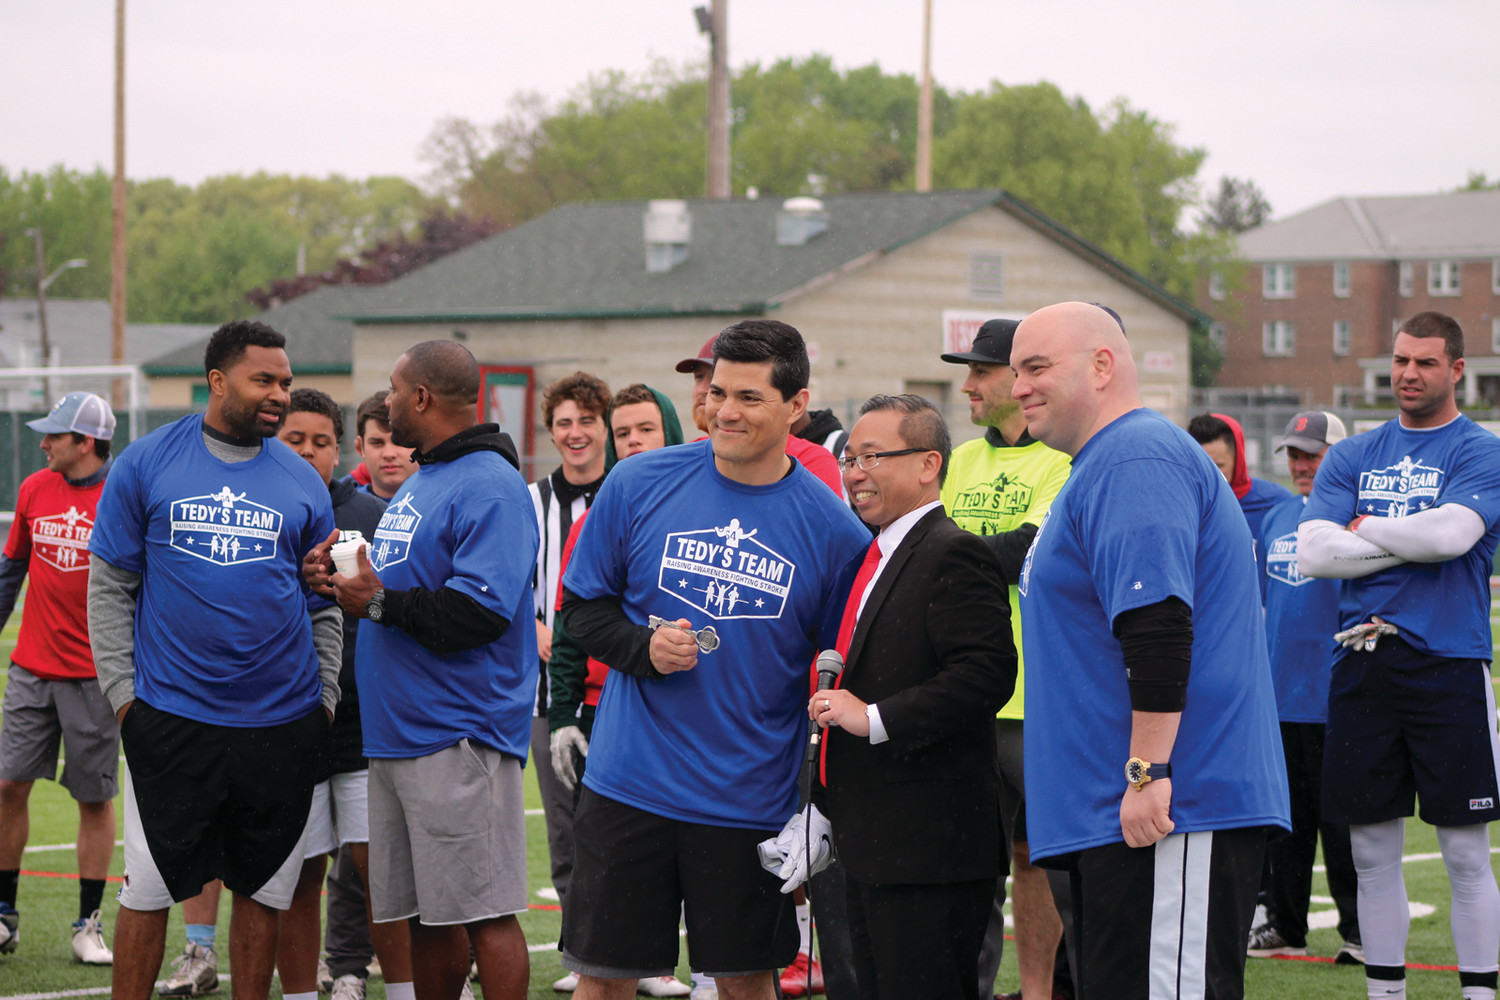 KEY TO THE CITY: Former Patriot great Tedy Bruschi (left) accepts the key to the city of Cranston from Mayor Allan Fung (center) and City Council President Michael Farina (right) on Saturday at Cranston Stadium.